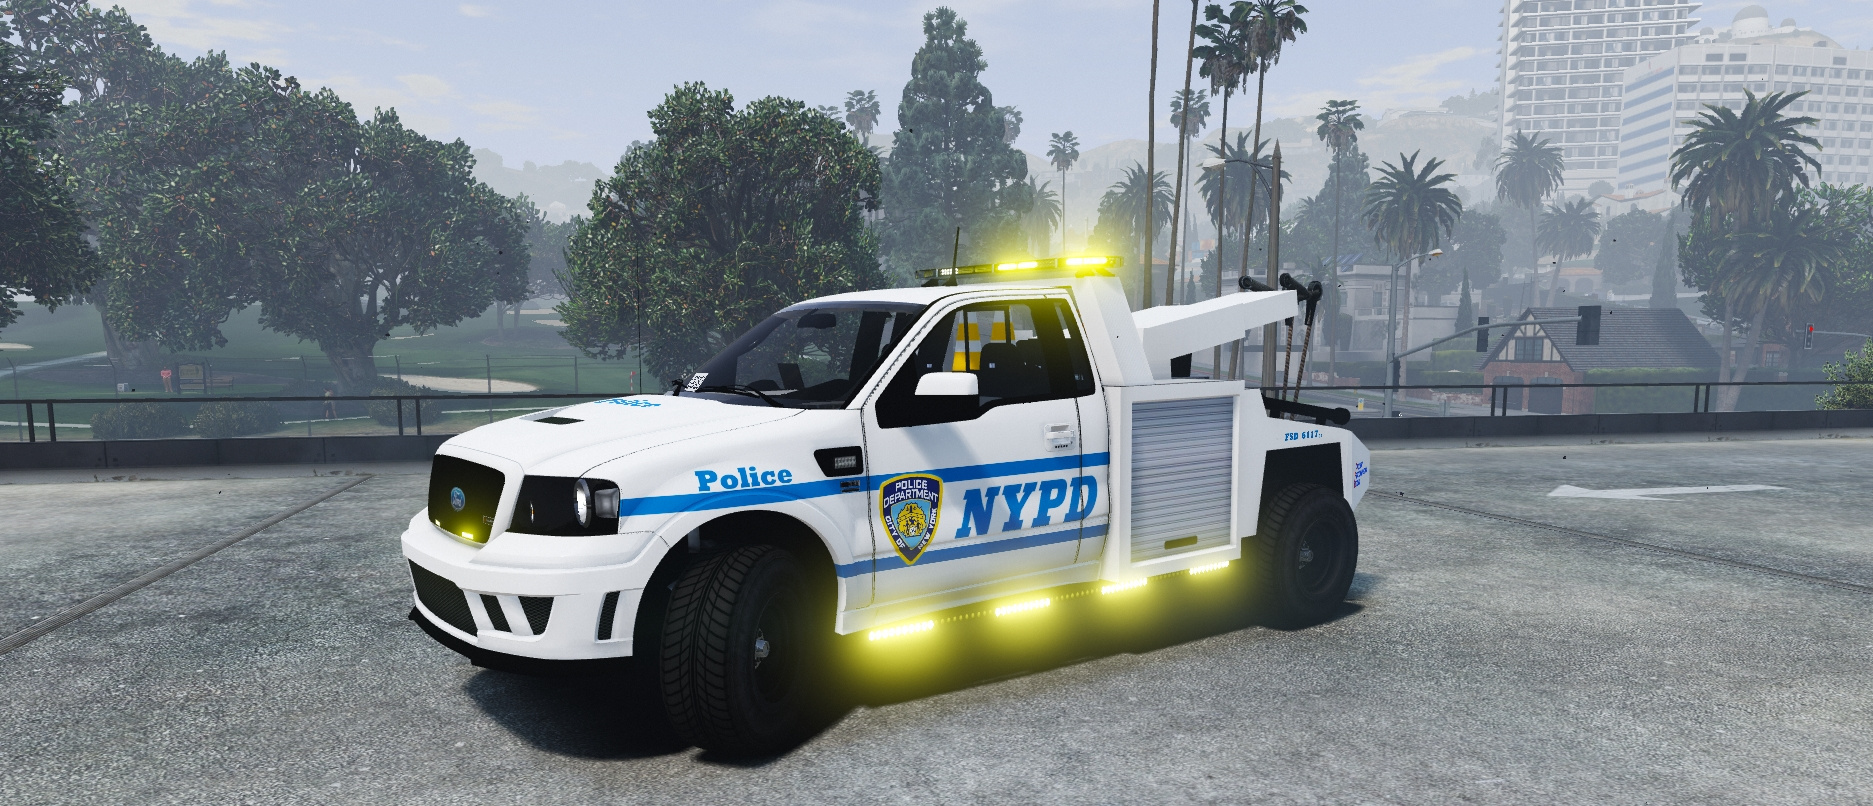 Nypd Tow Truck Ford S331 Gta5 Mods Com